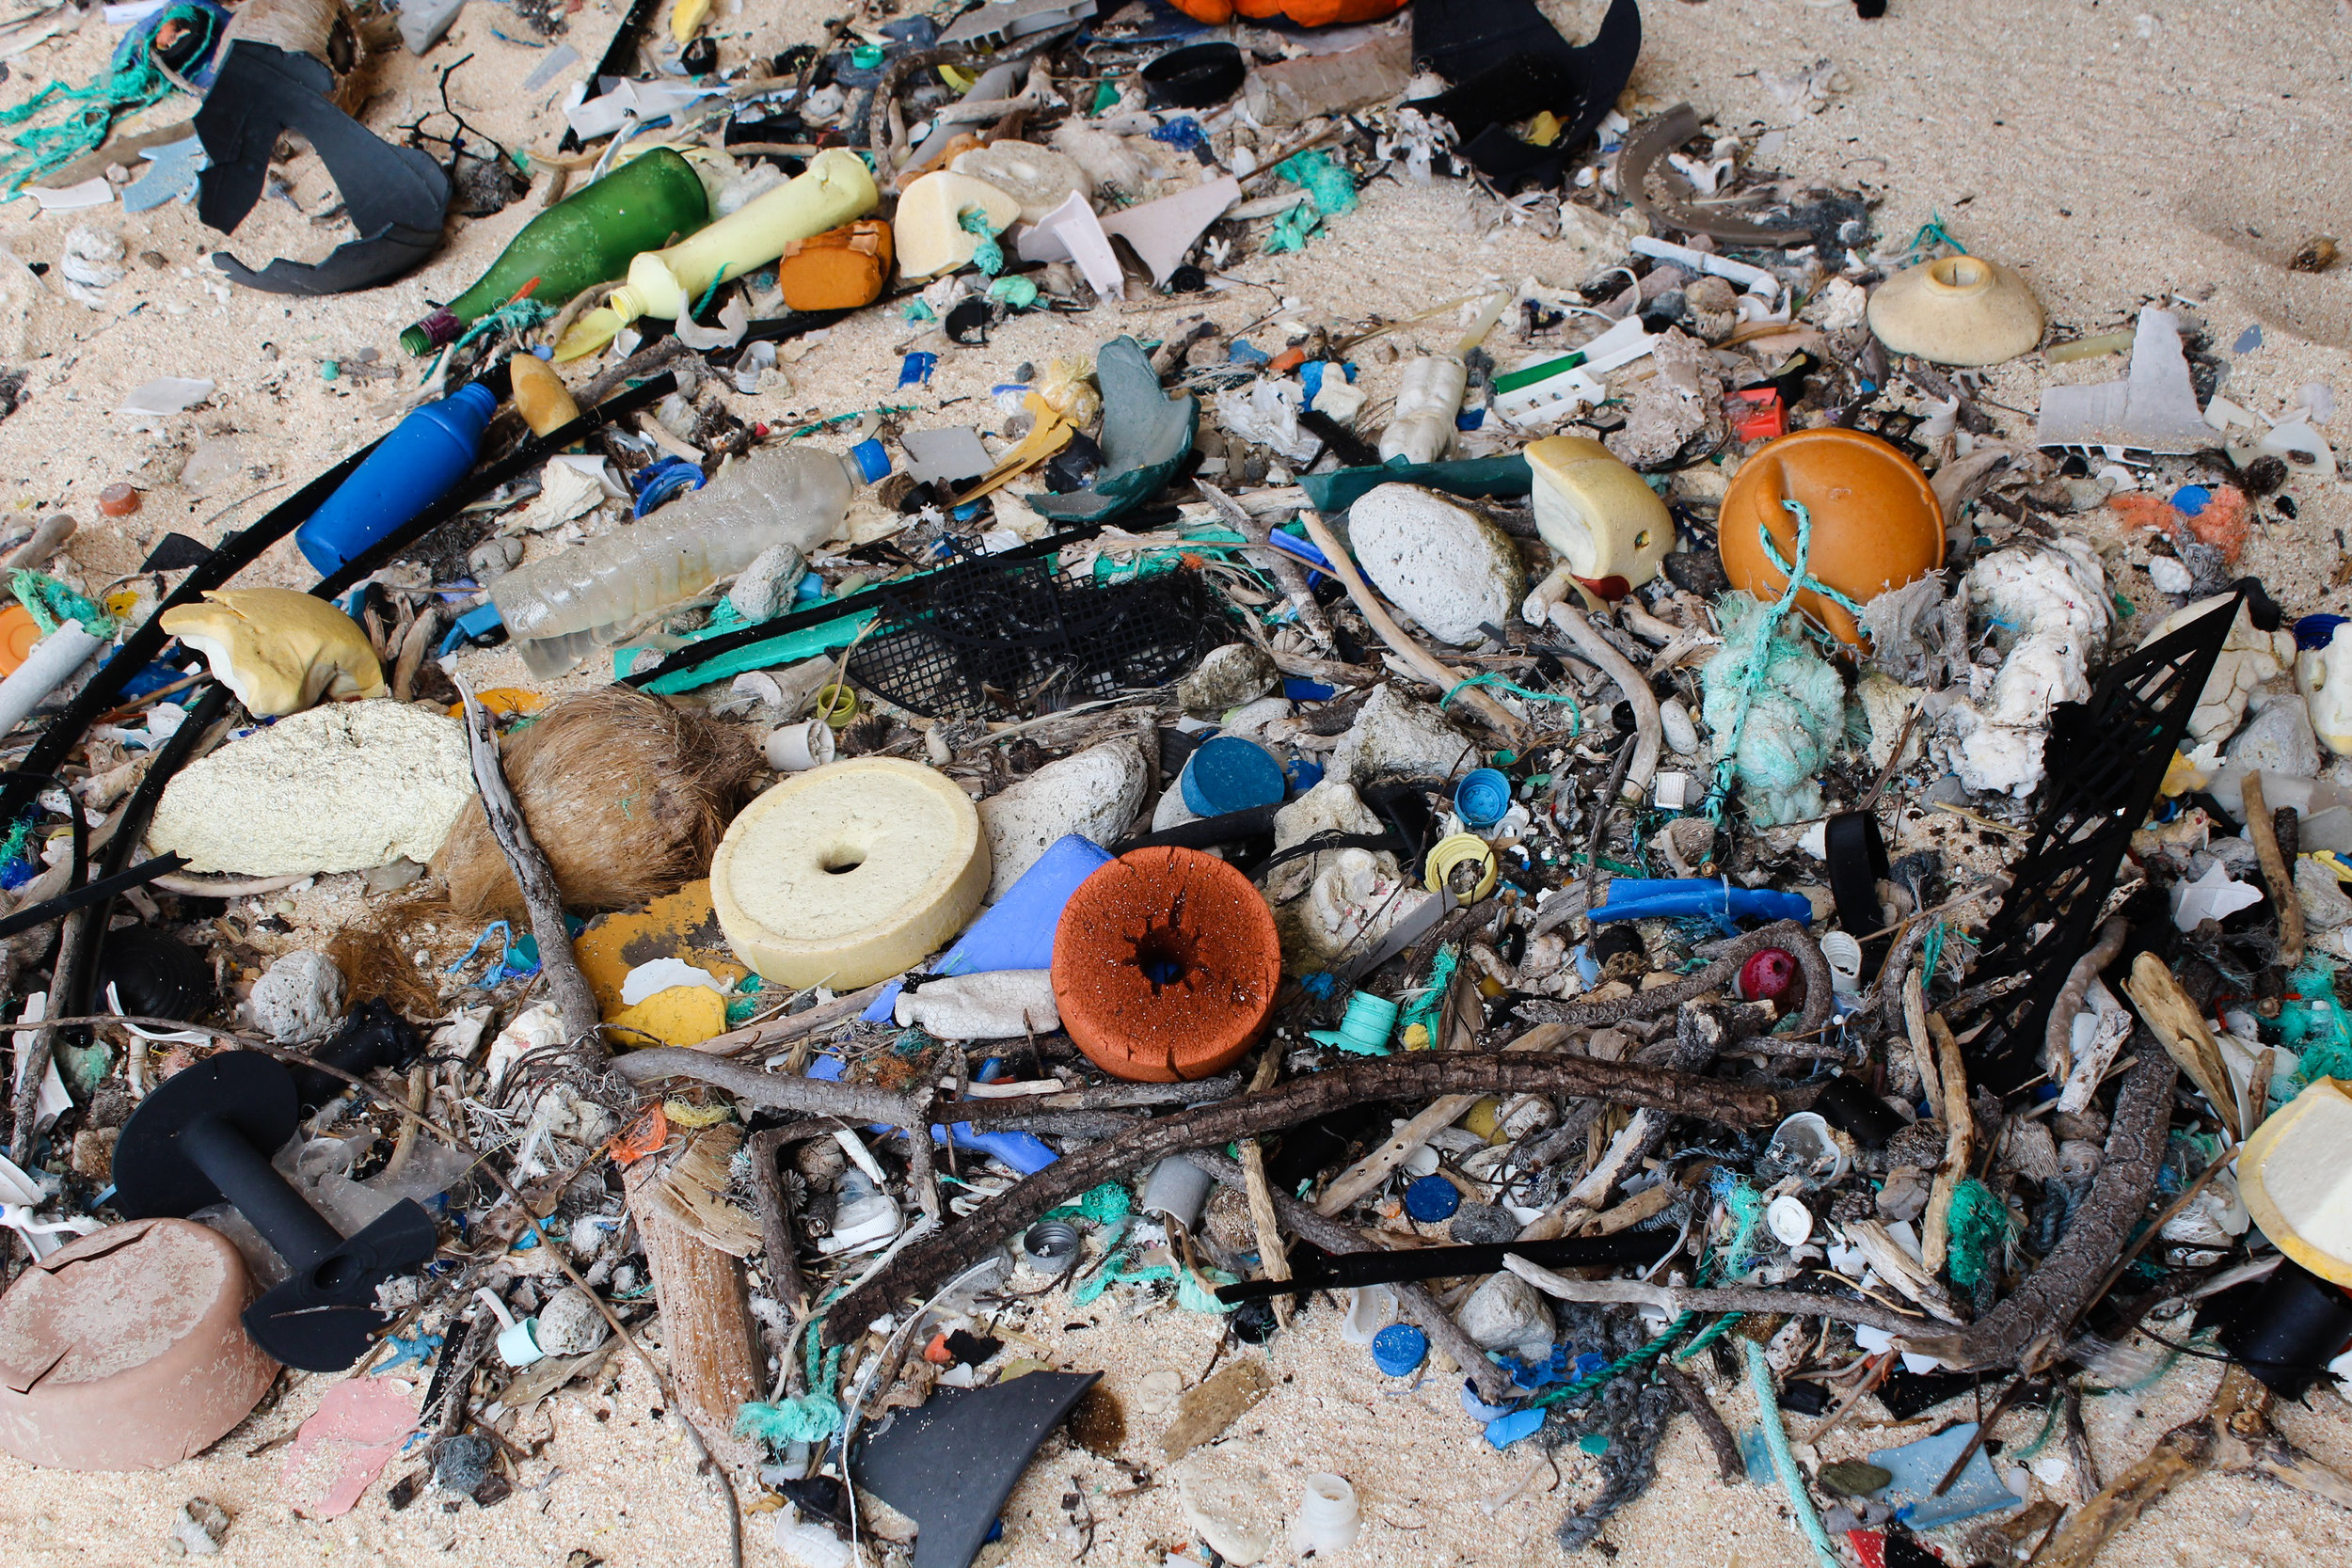 Researchers discovered roughly 37.7 million items of debris along the beach, not accounting for plastic that was buried beneath 10cm.